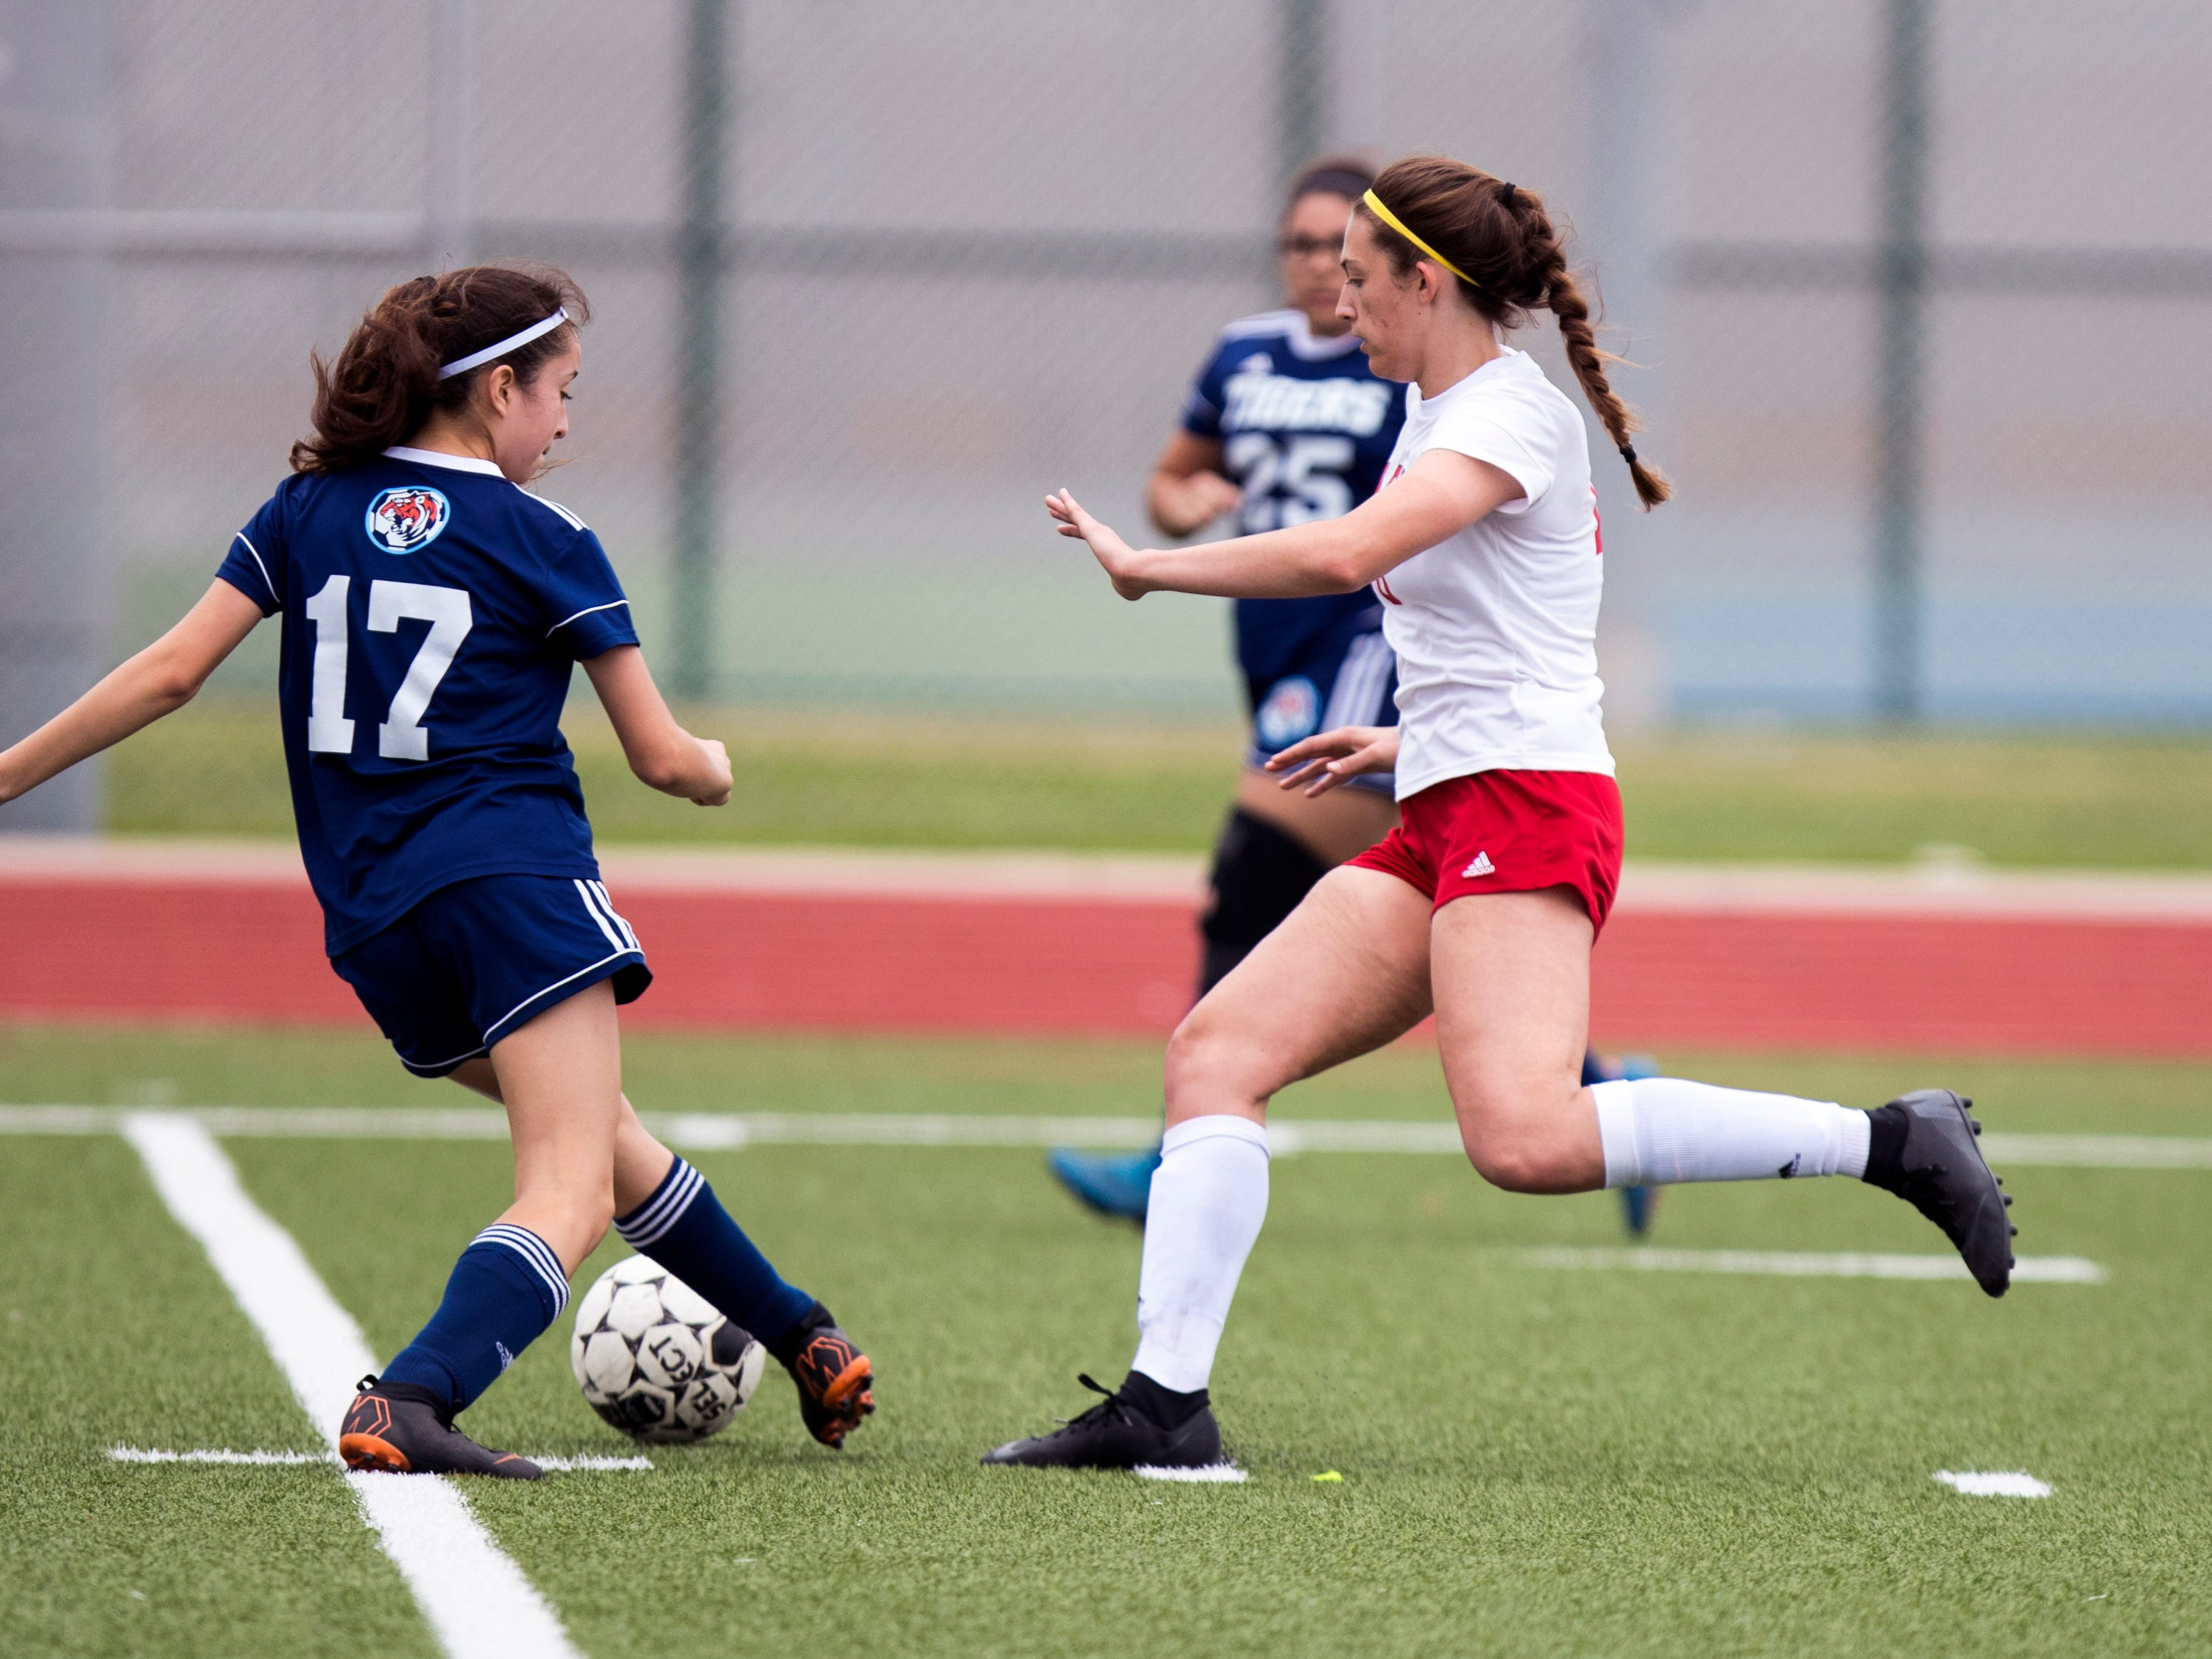 Veterans Memorial's Abigail Jones-Gittinger and Carroll's Lisa Villarreal go after the ball in the Mira's Soccer Tournament at Veterans Memorial High School on Friday, January 11, 2019. The Eagles won the game 5-0.